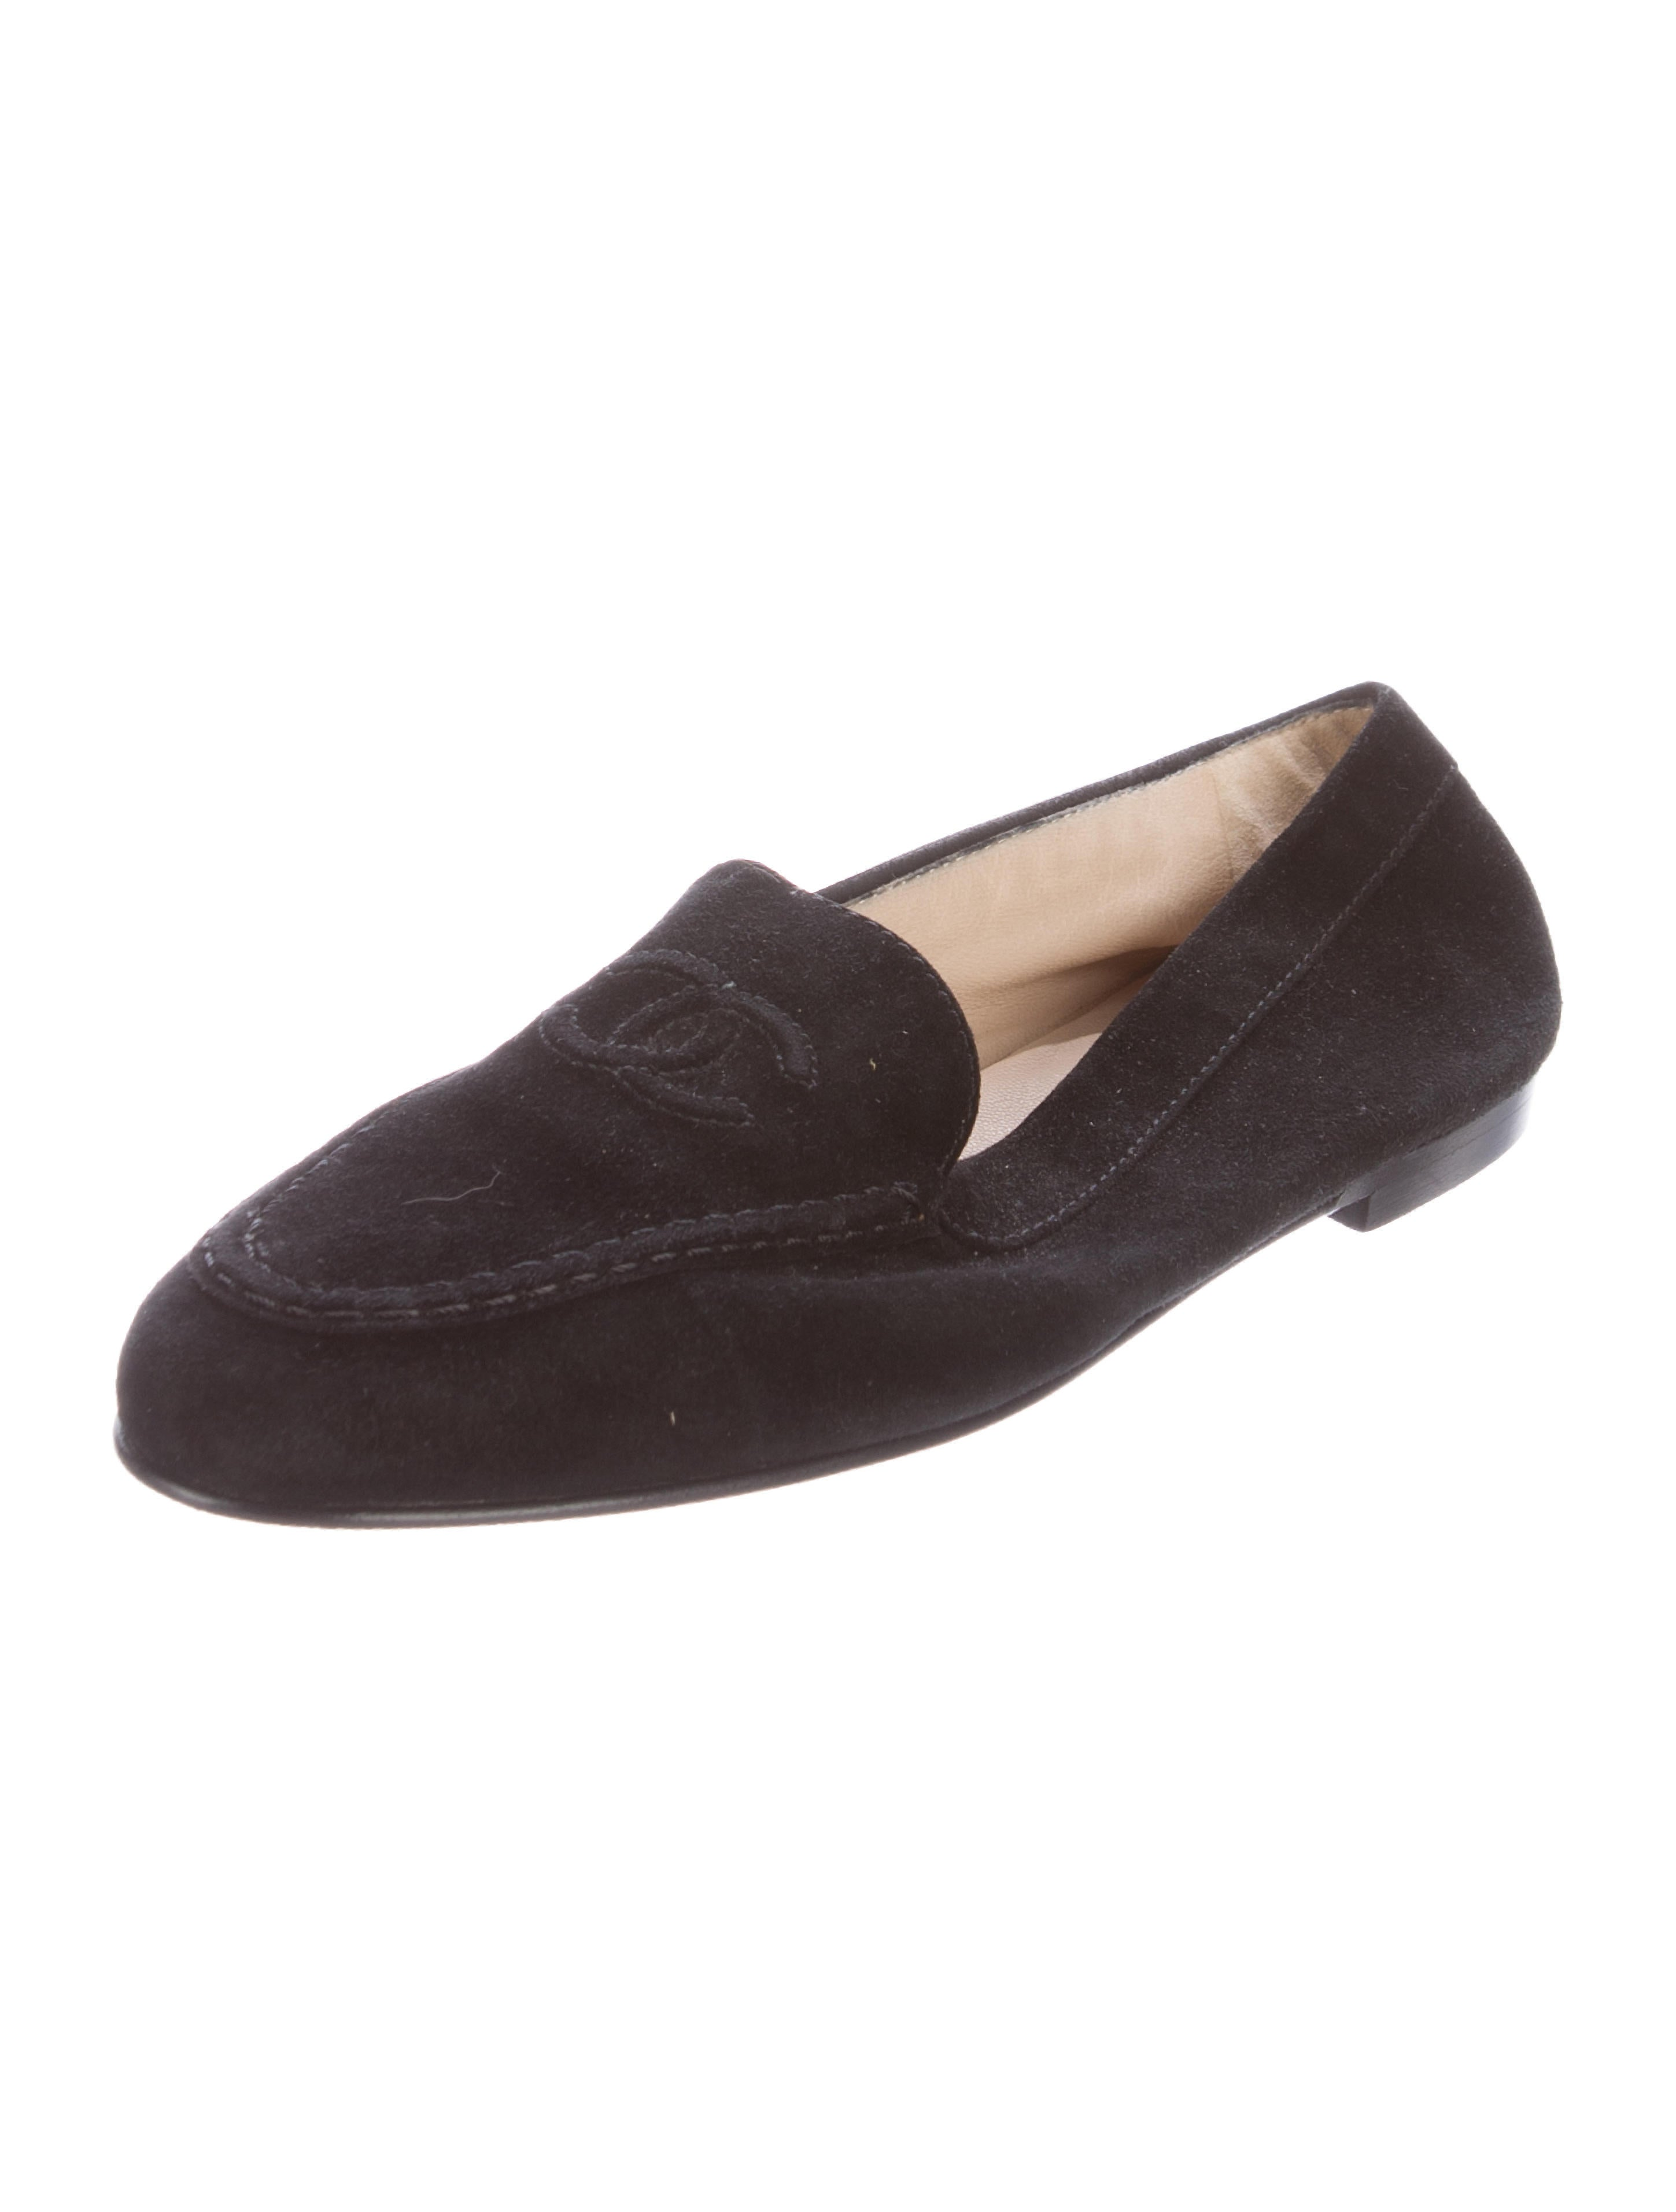 Chanel Suede CC Loafers - Shoes - CHA179611 | The RealReal